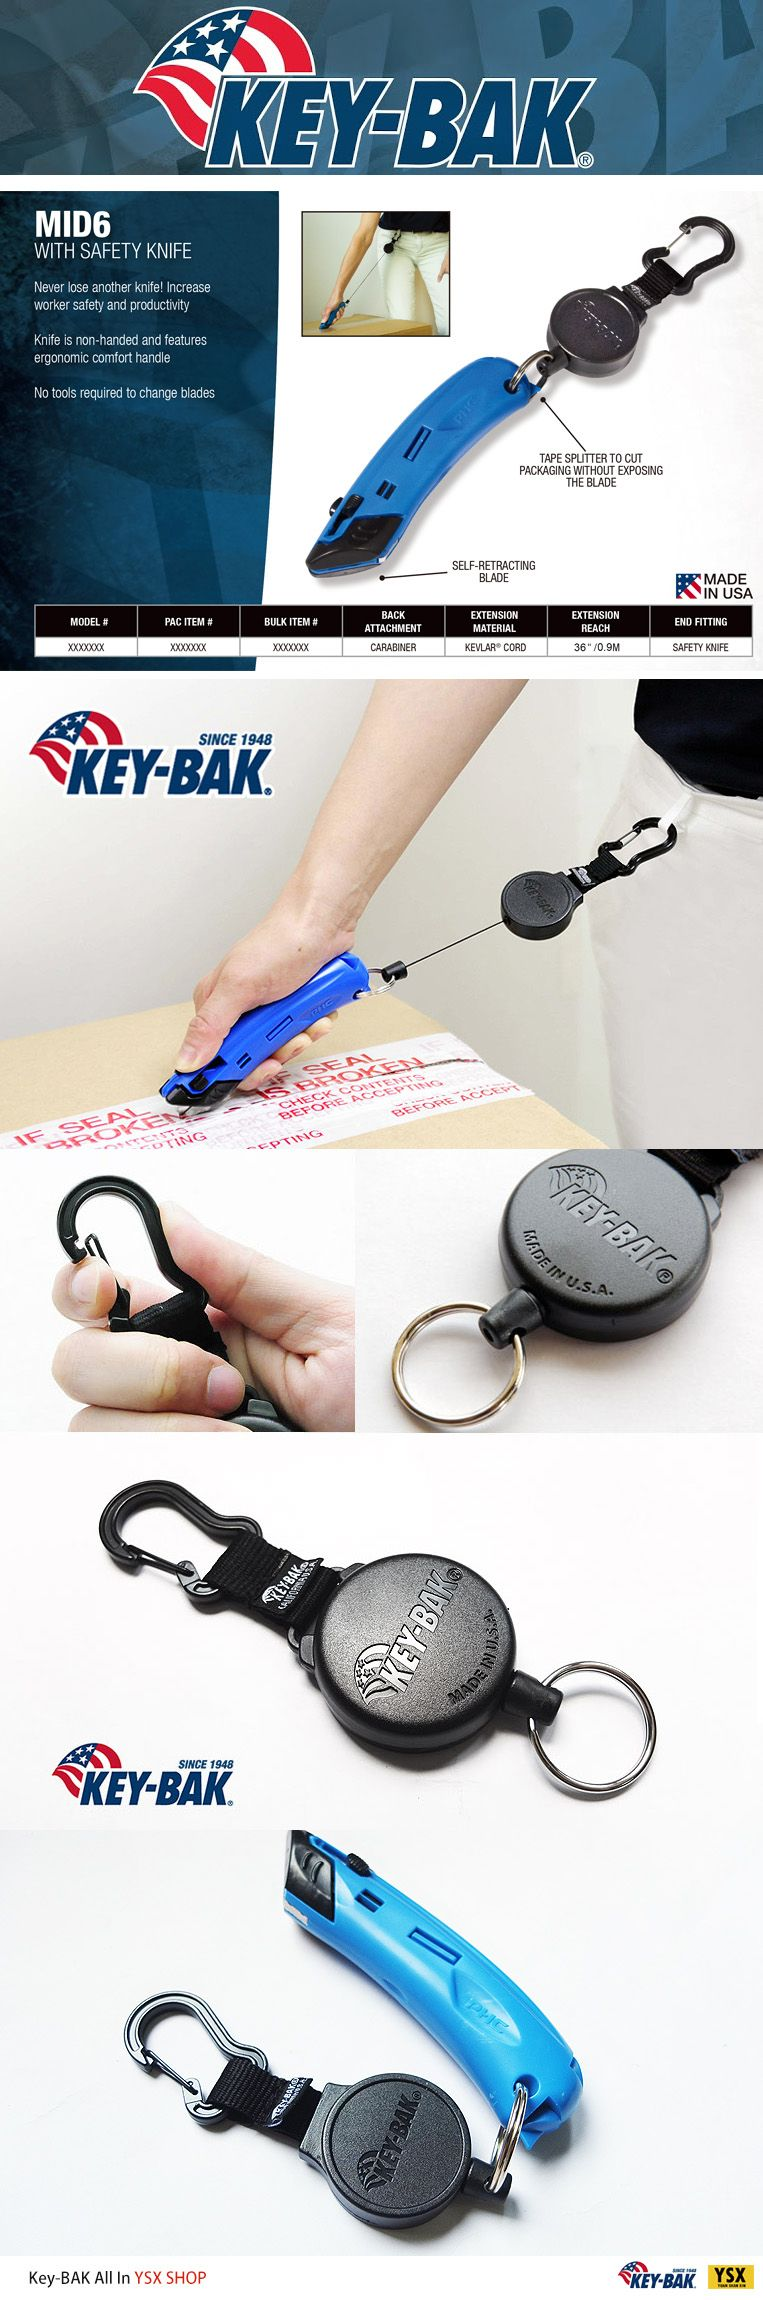 Key Bak Mid6 Retractable 36 Quot Polyester Key Holder With